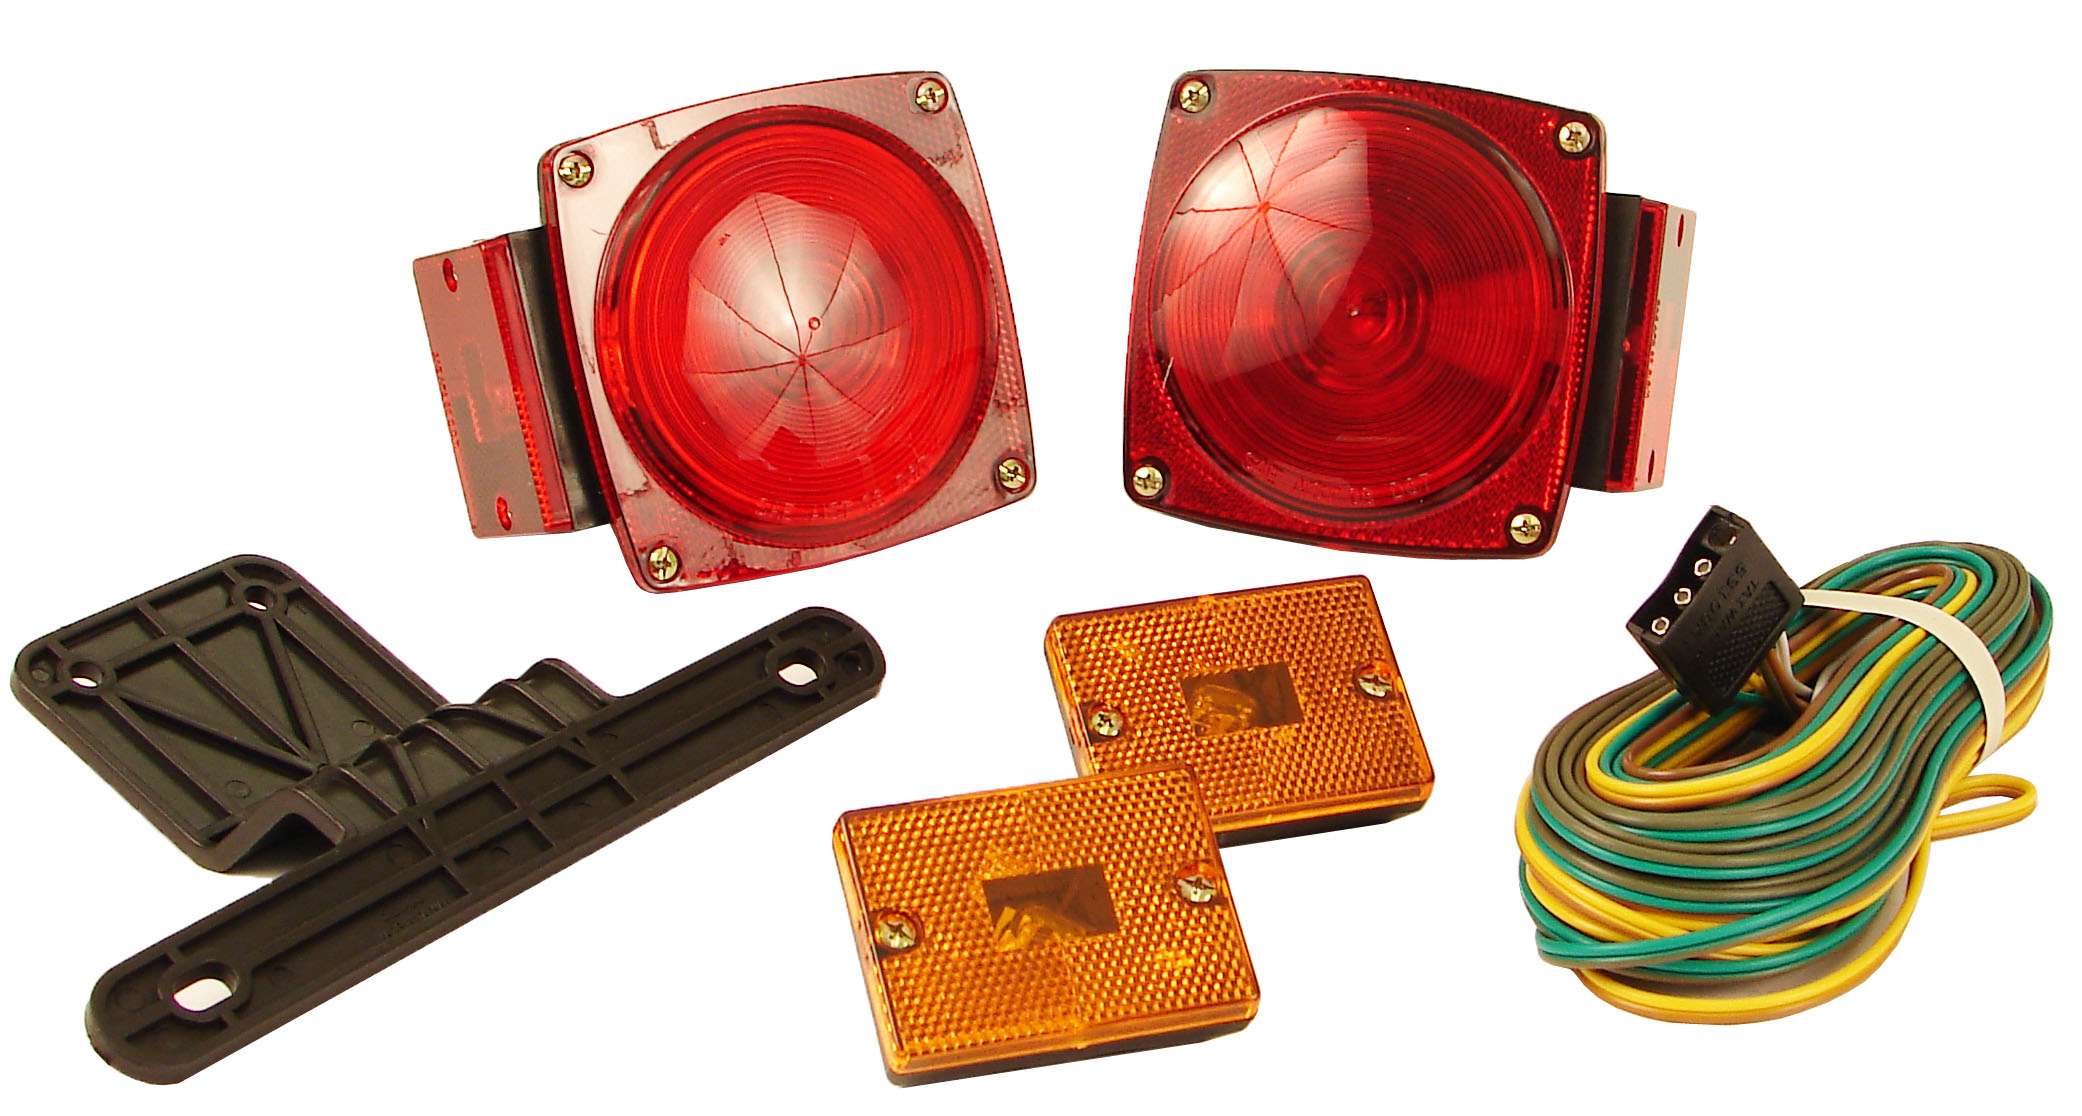 Stupendous Deluxe Trailer Light Kit With Wiring Harness Wiring Digital Resources Skatpmognl